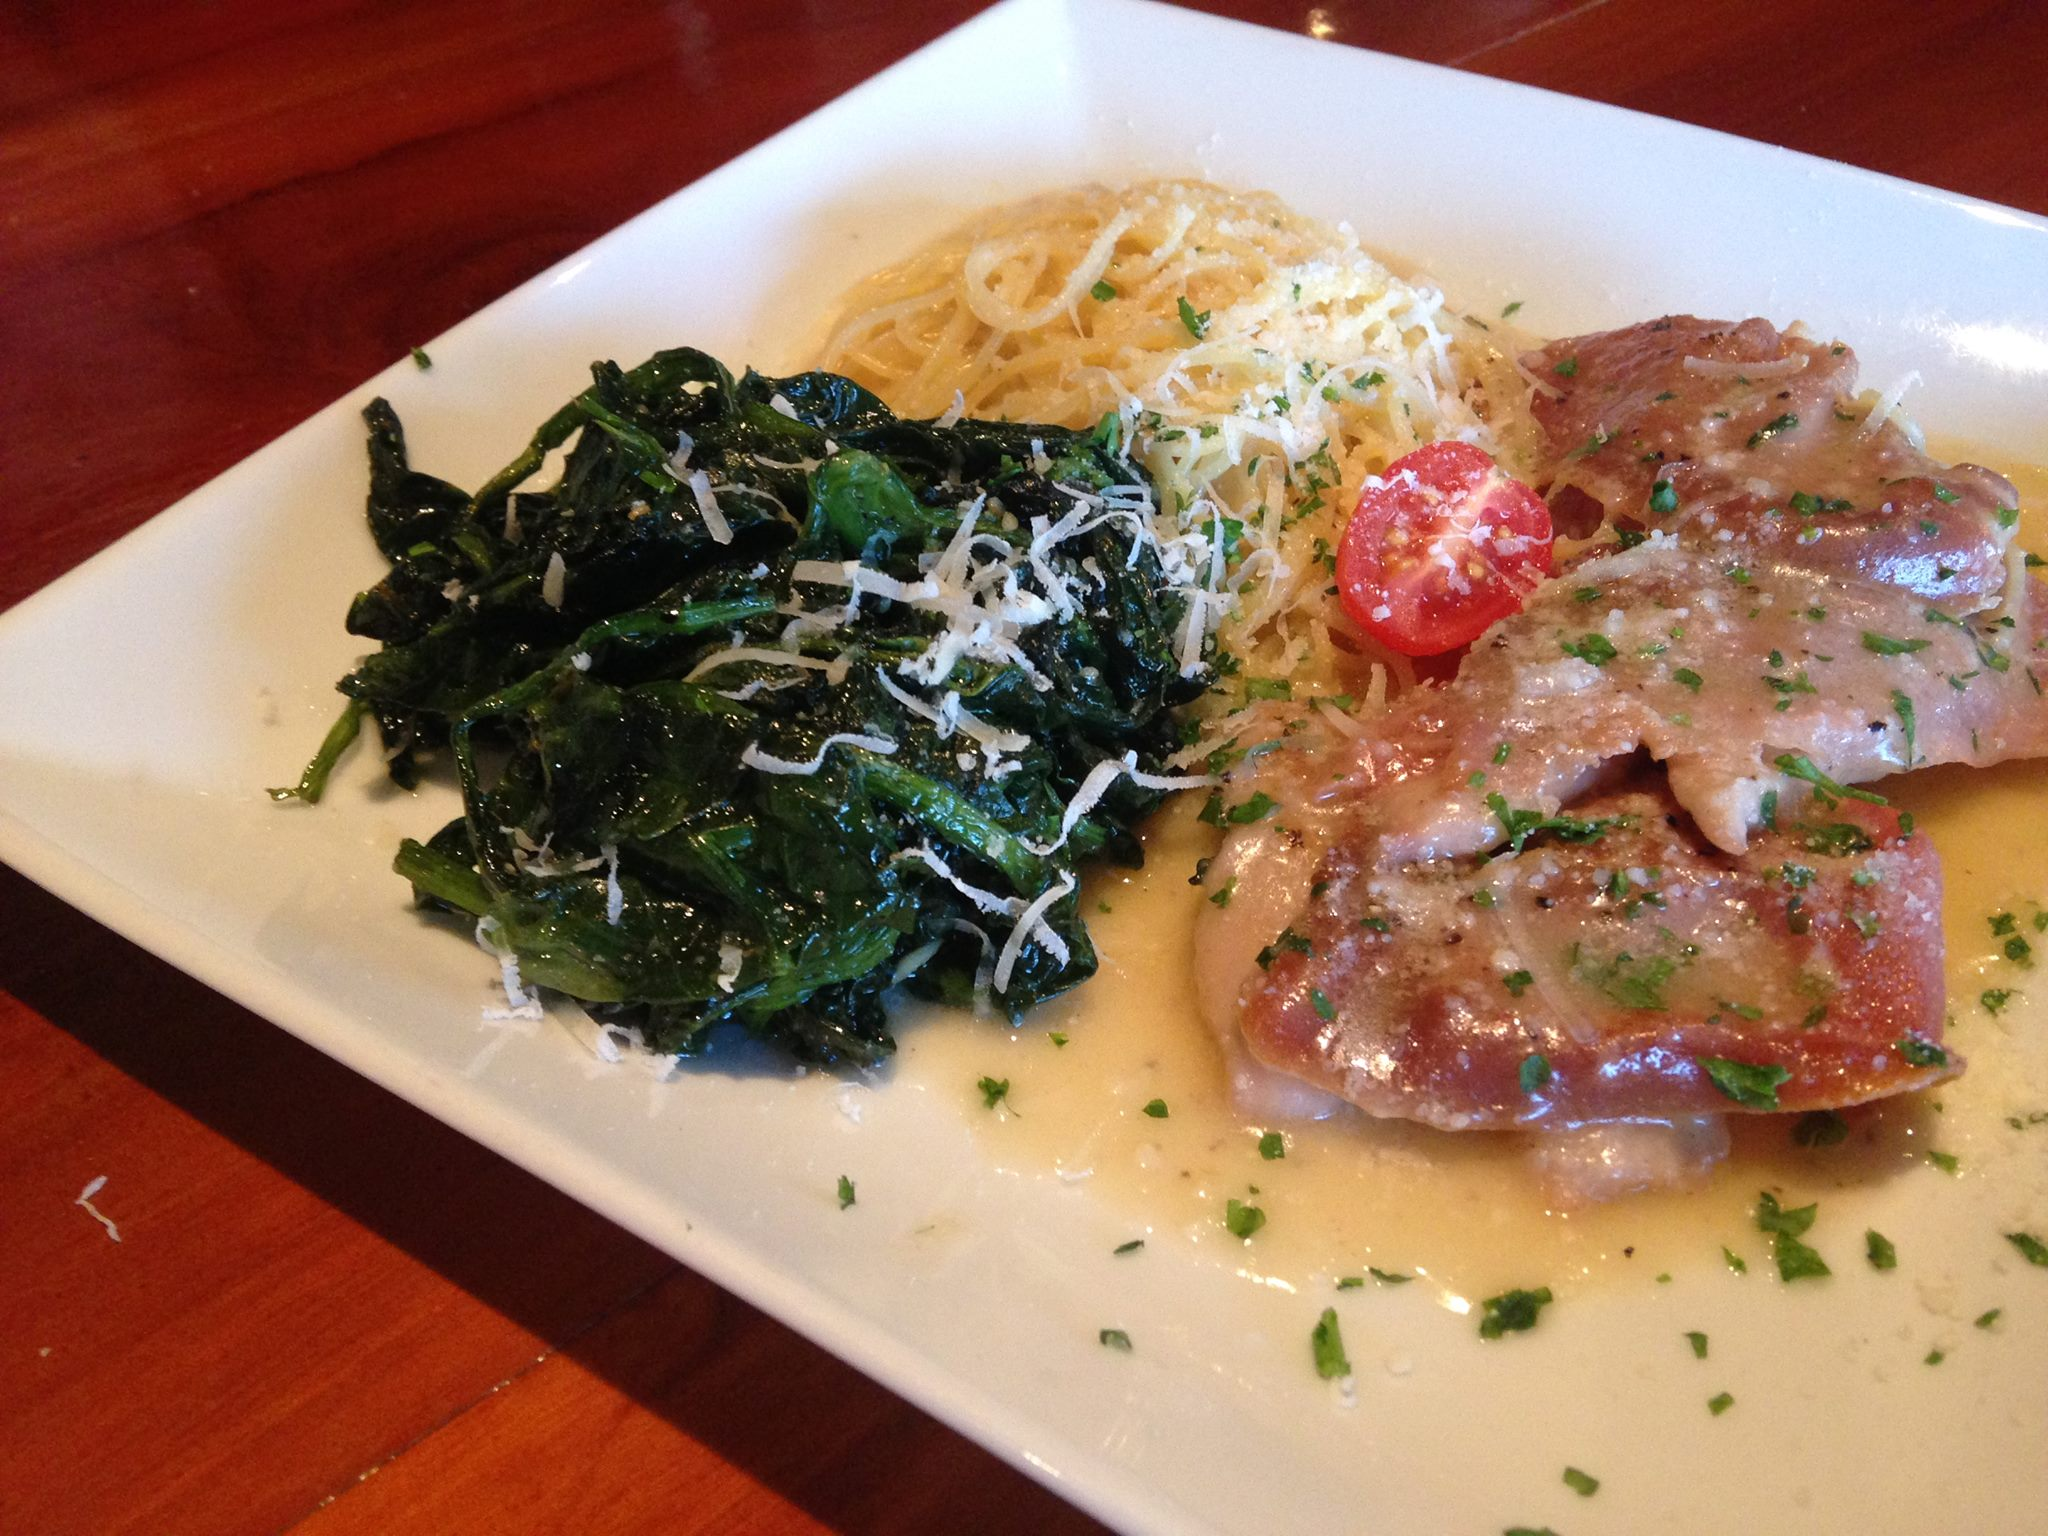 Saltimbocca alla romano. Prosciutto, Sage & White Wine Sauce with angel hair pasta, side of sauteed spinach.